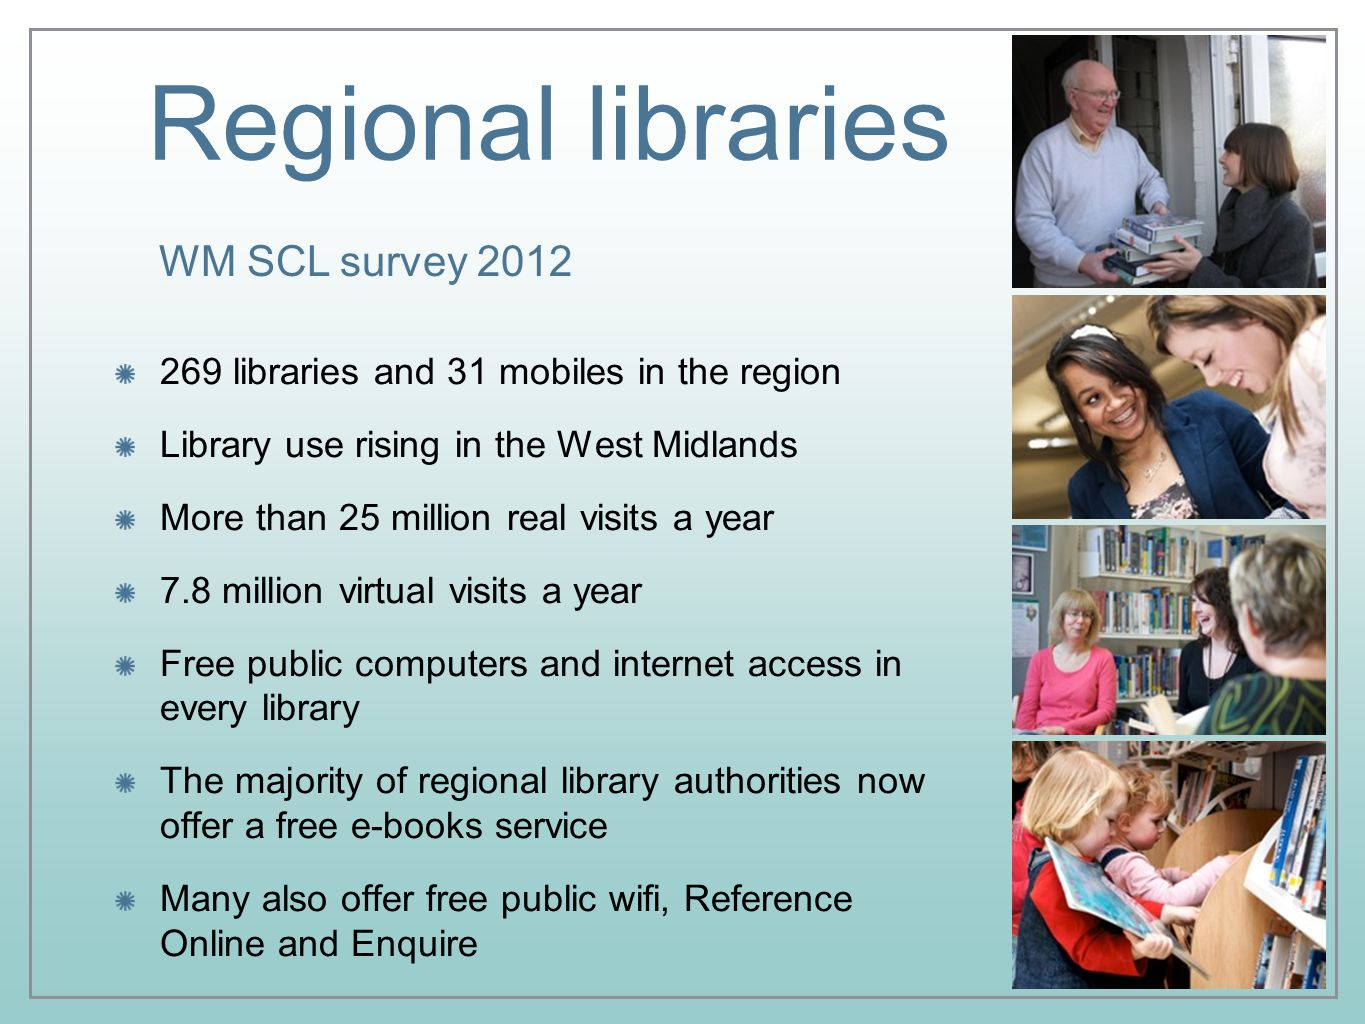 Regional libraries 269 libraries and 31 mobiles in the region Library use rising in the West Midlands More than 25 million real visits a year 7.8 million virtual visits a year Free public computers and internet access in every library The majority of regional library authorities now offer a free e-books service Many also offer free public wifi, Reference Online and Enquire WM SCL survey 2012